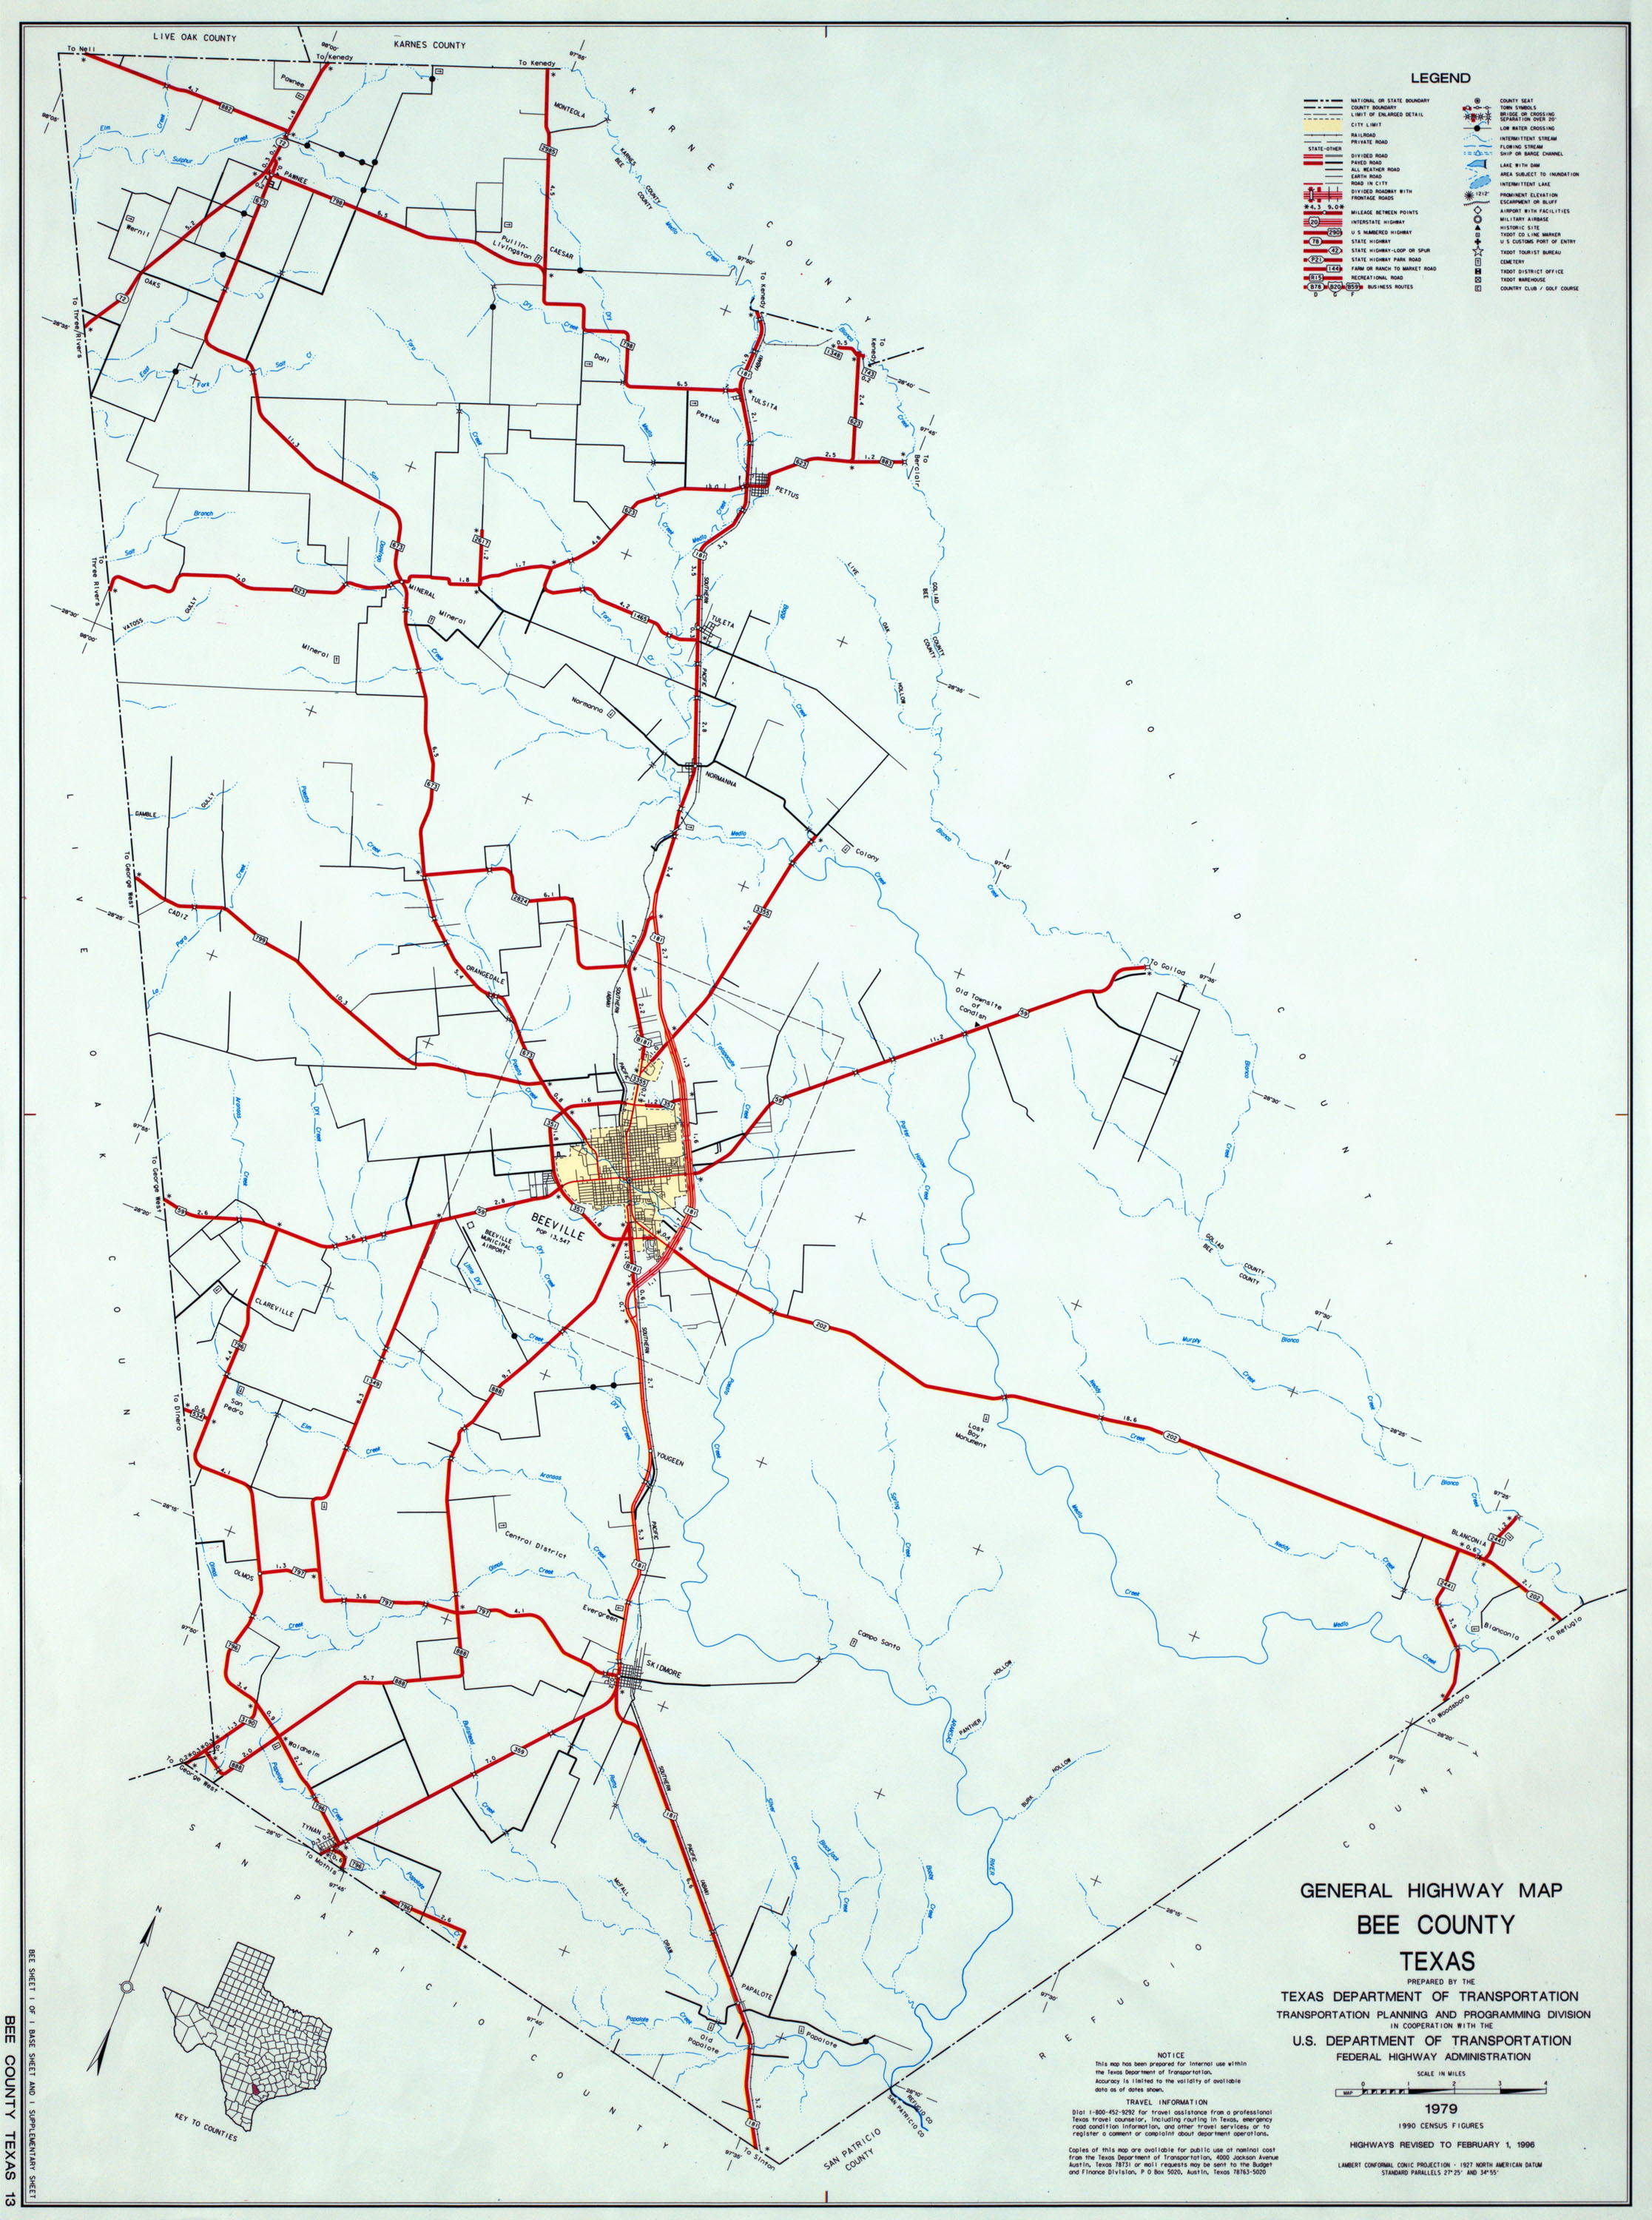 Texas County Highway Maps Browse PerryCastaeda Map Collection